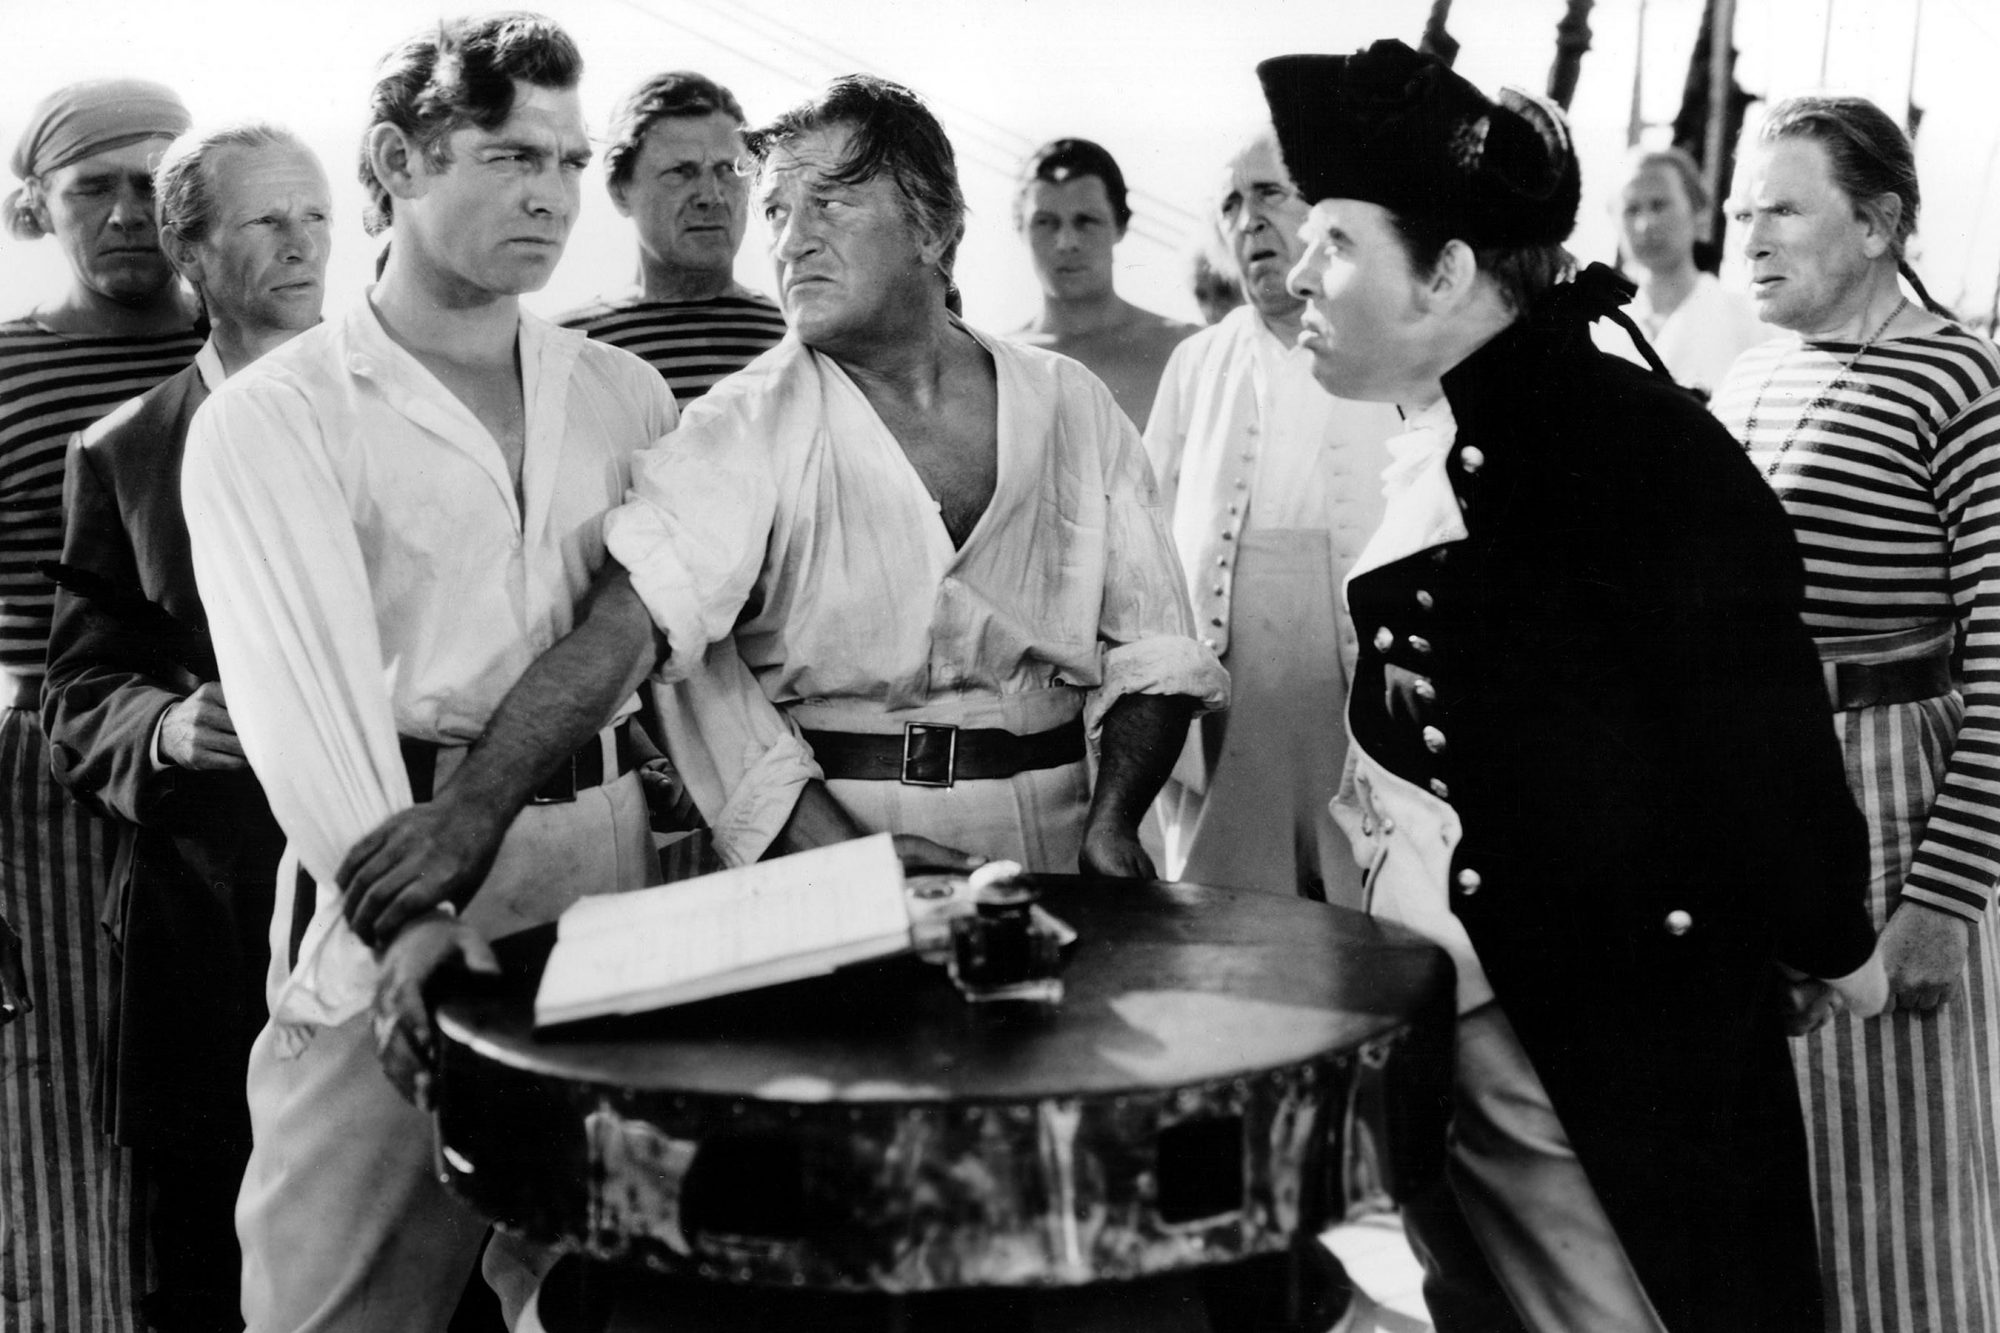 MUTINY ON THE BOUNTY, Ian Wolfe, Clark Gable, Charles Laughton, 1935